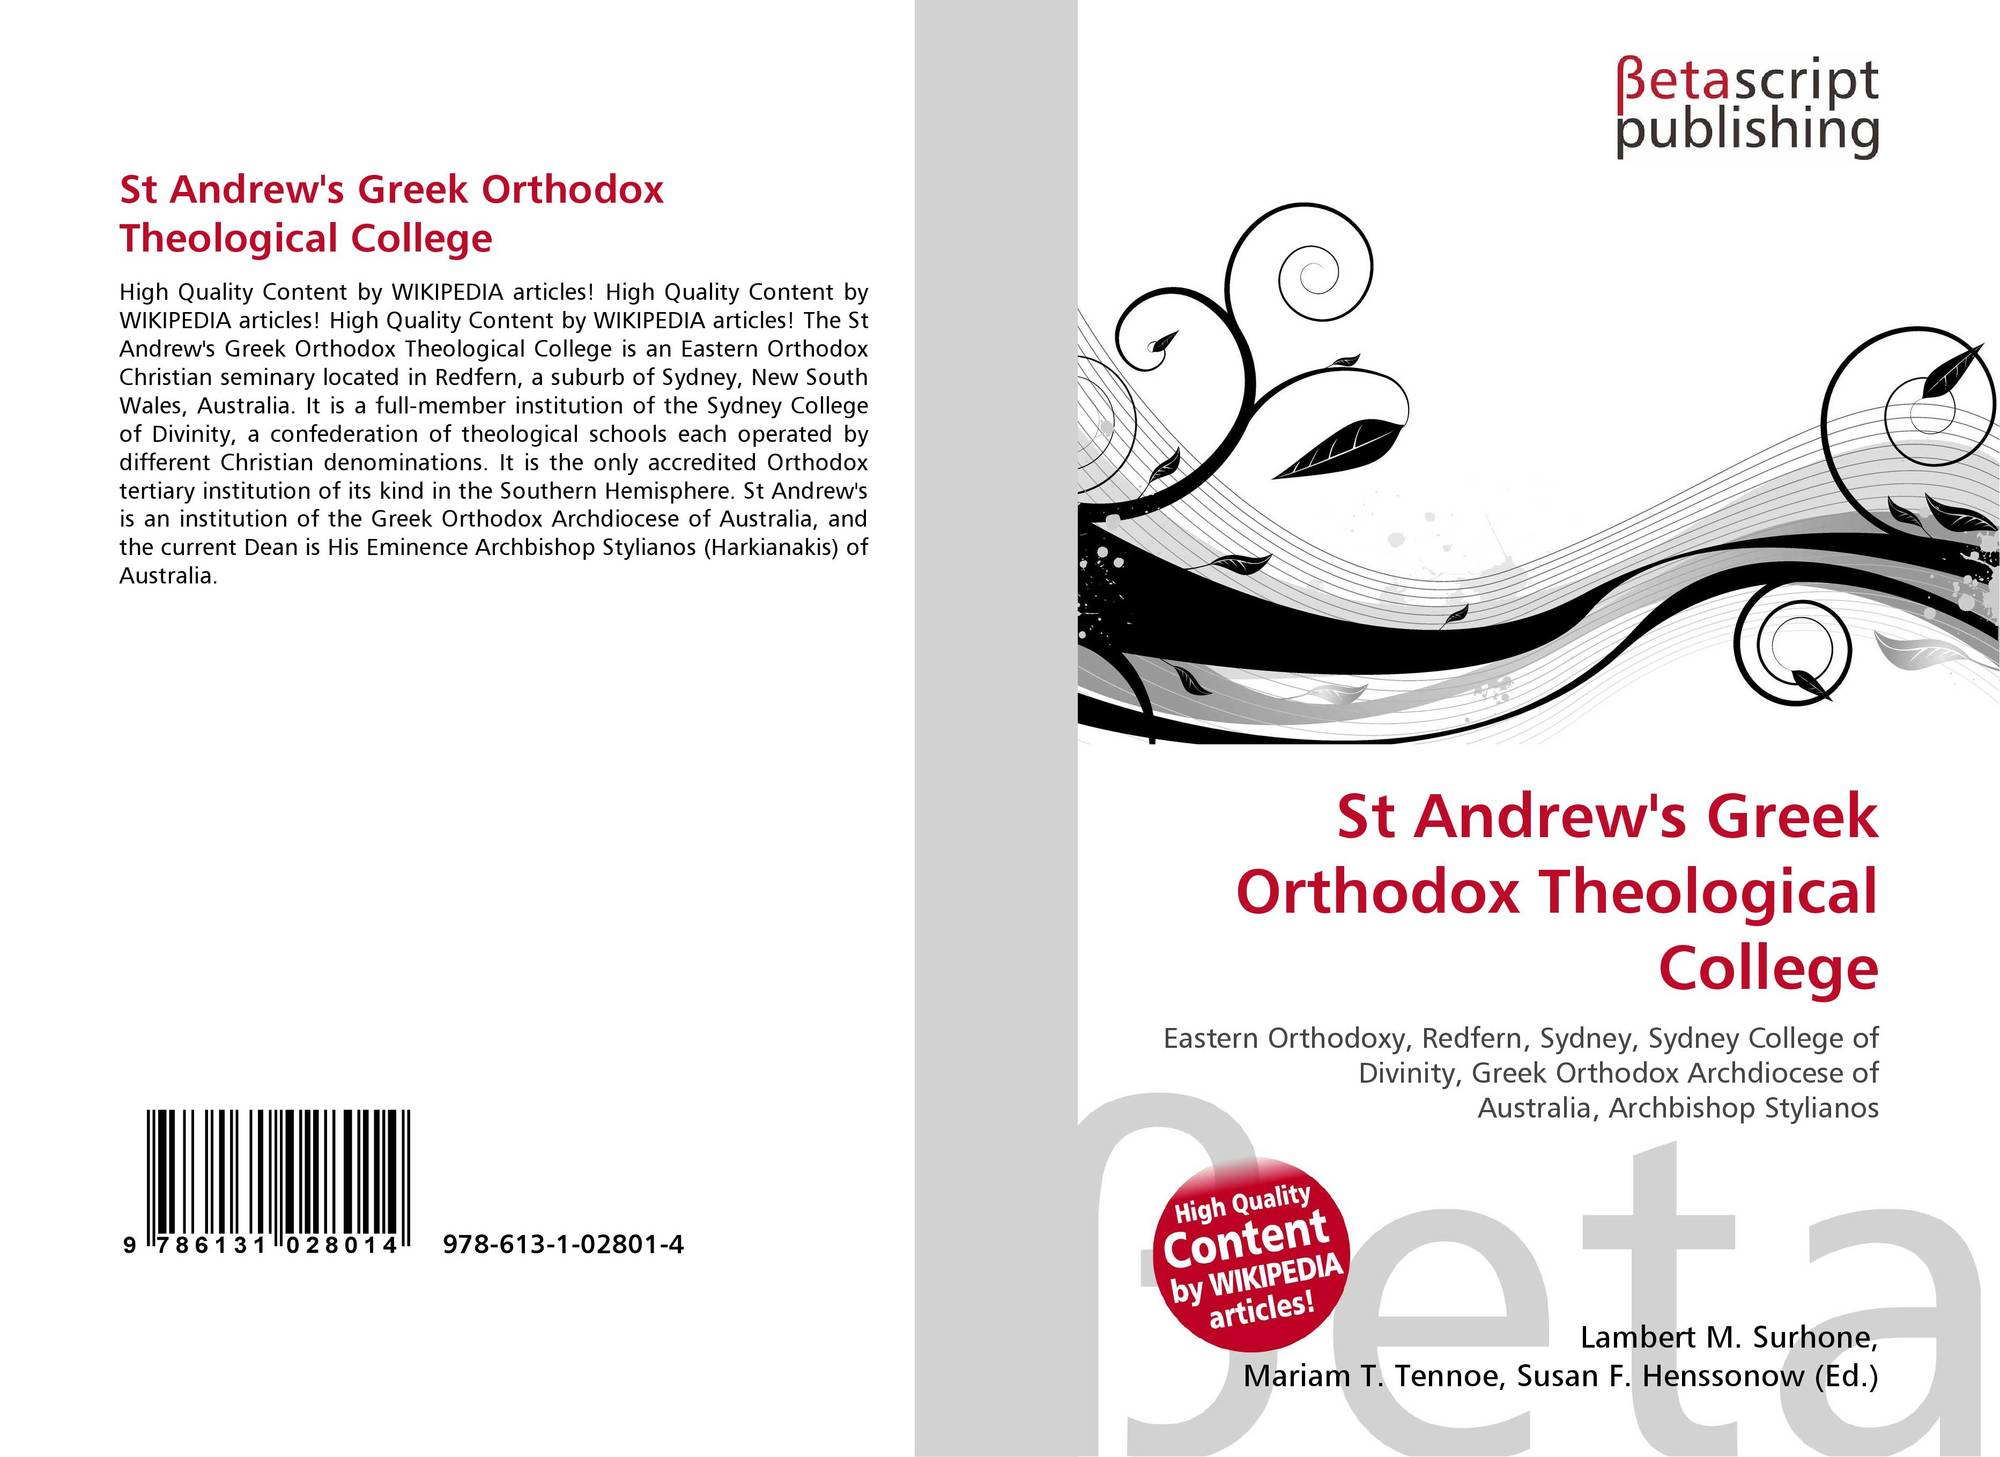 St Andrew's Greek Orthodox Theological College, 978-613-1